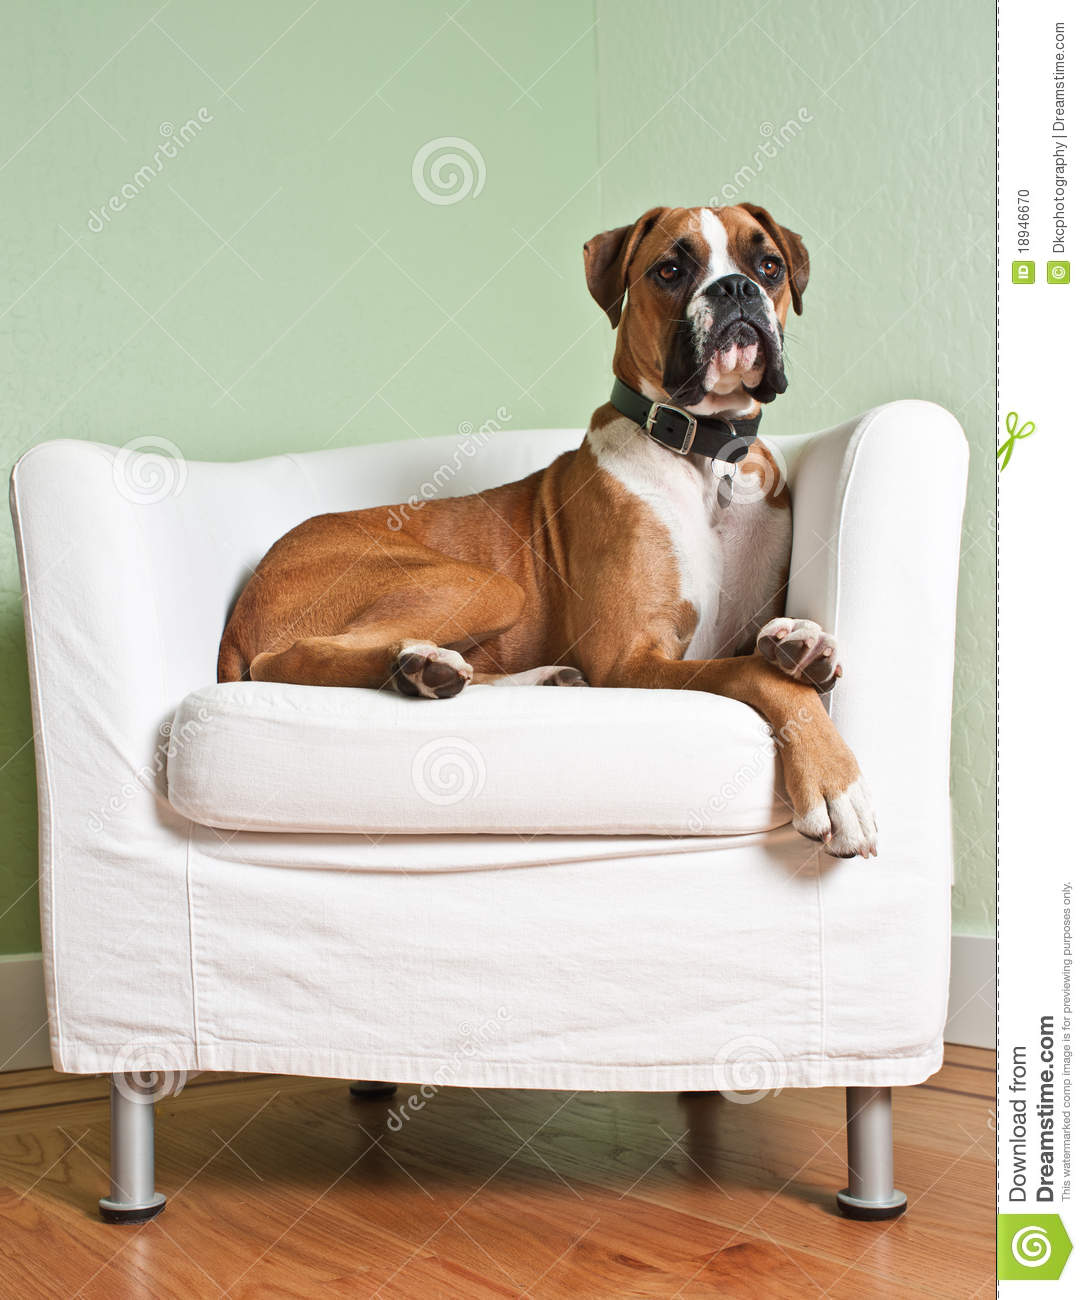 Sparta Sectional By Nicoletti in addition Full Lace Passion Open Lucrative Lingerie Including Stockings 461303 furthermore Modern Living Room Designs moreover Stock Photo Boxer Dog Chair Image18946670 further Desk With Shelves. on white modern high chair